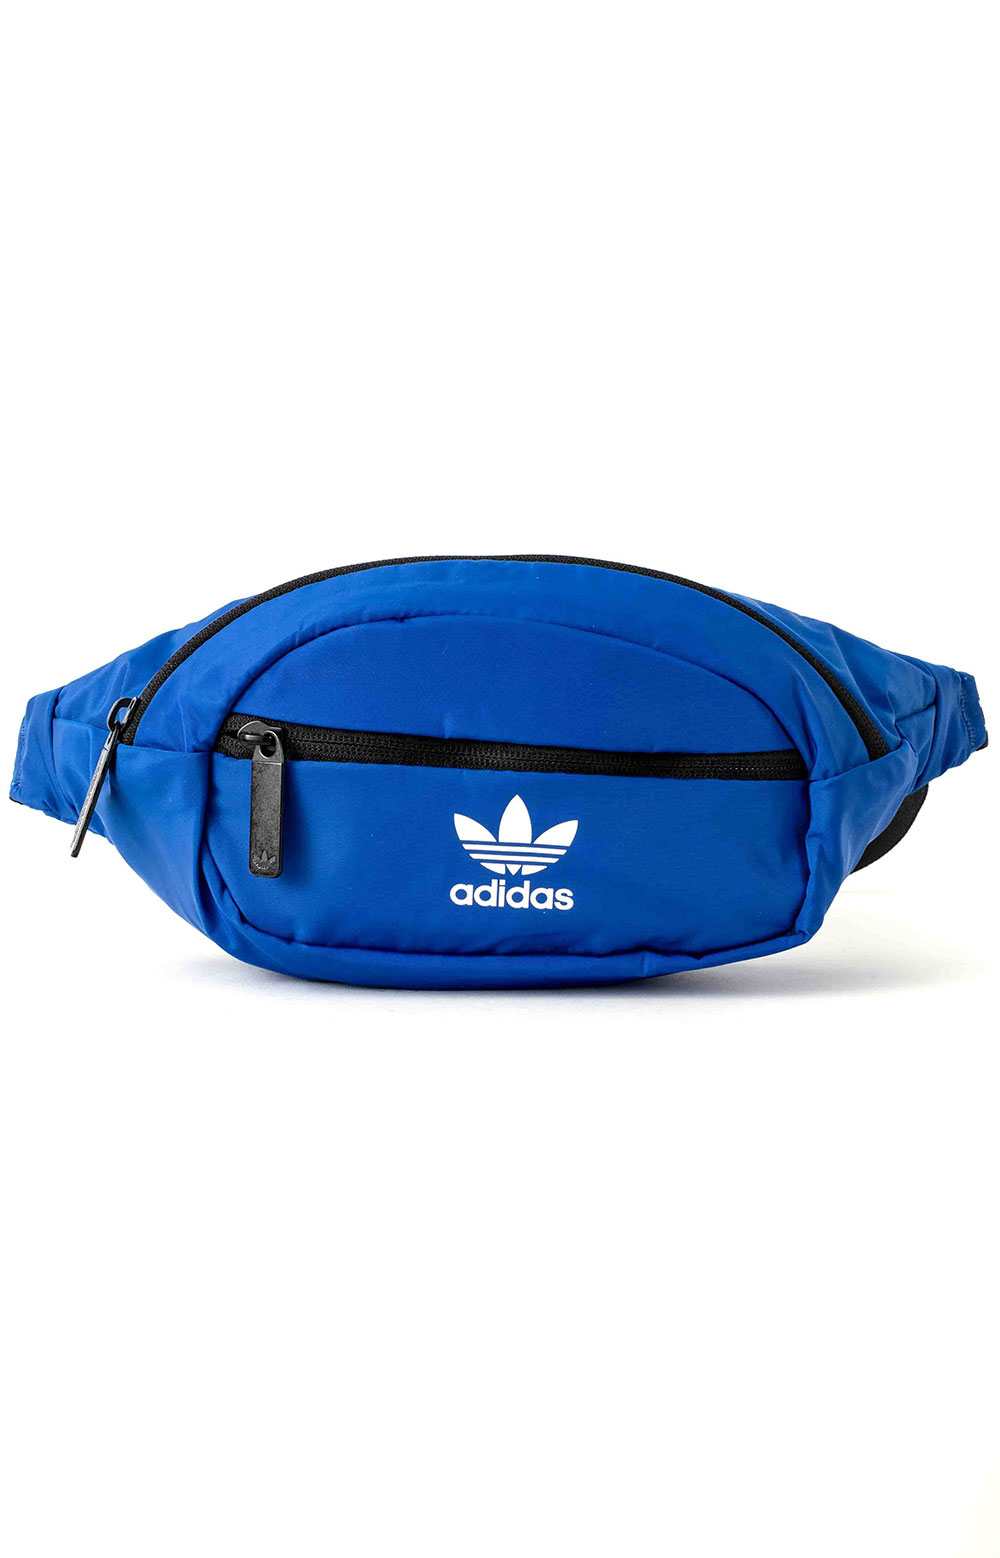 Originals National Waist Pack - Collegiate Royal Blue